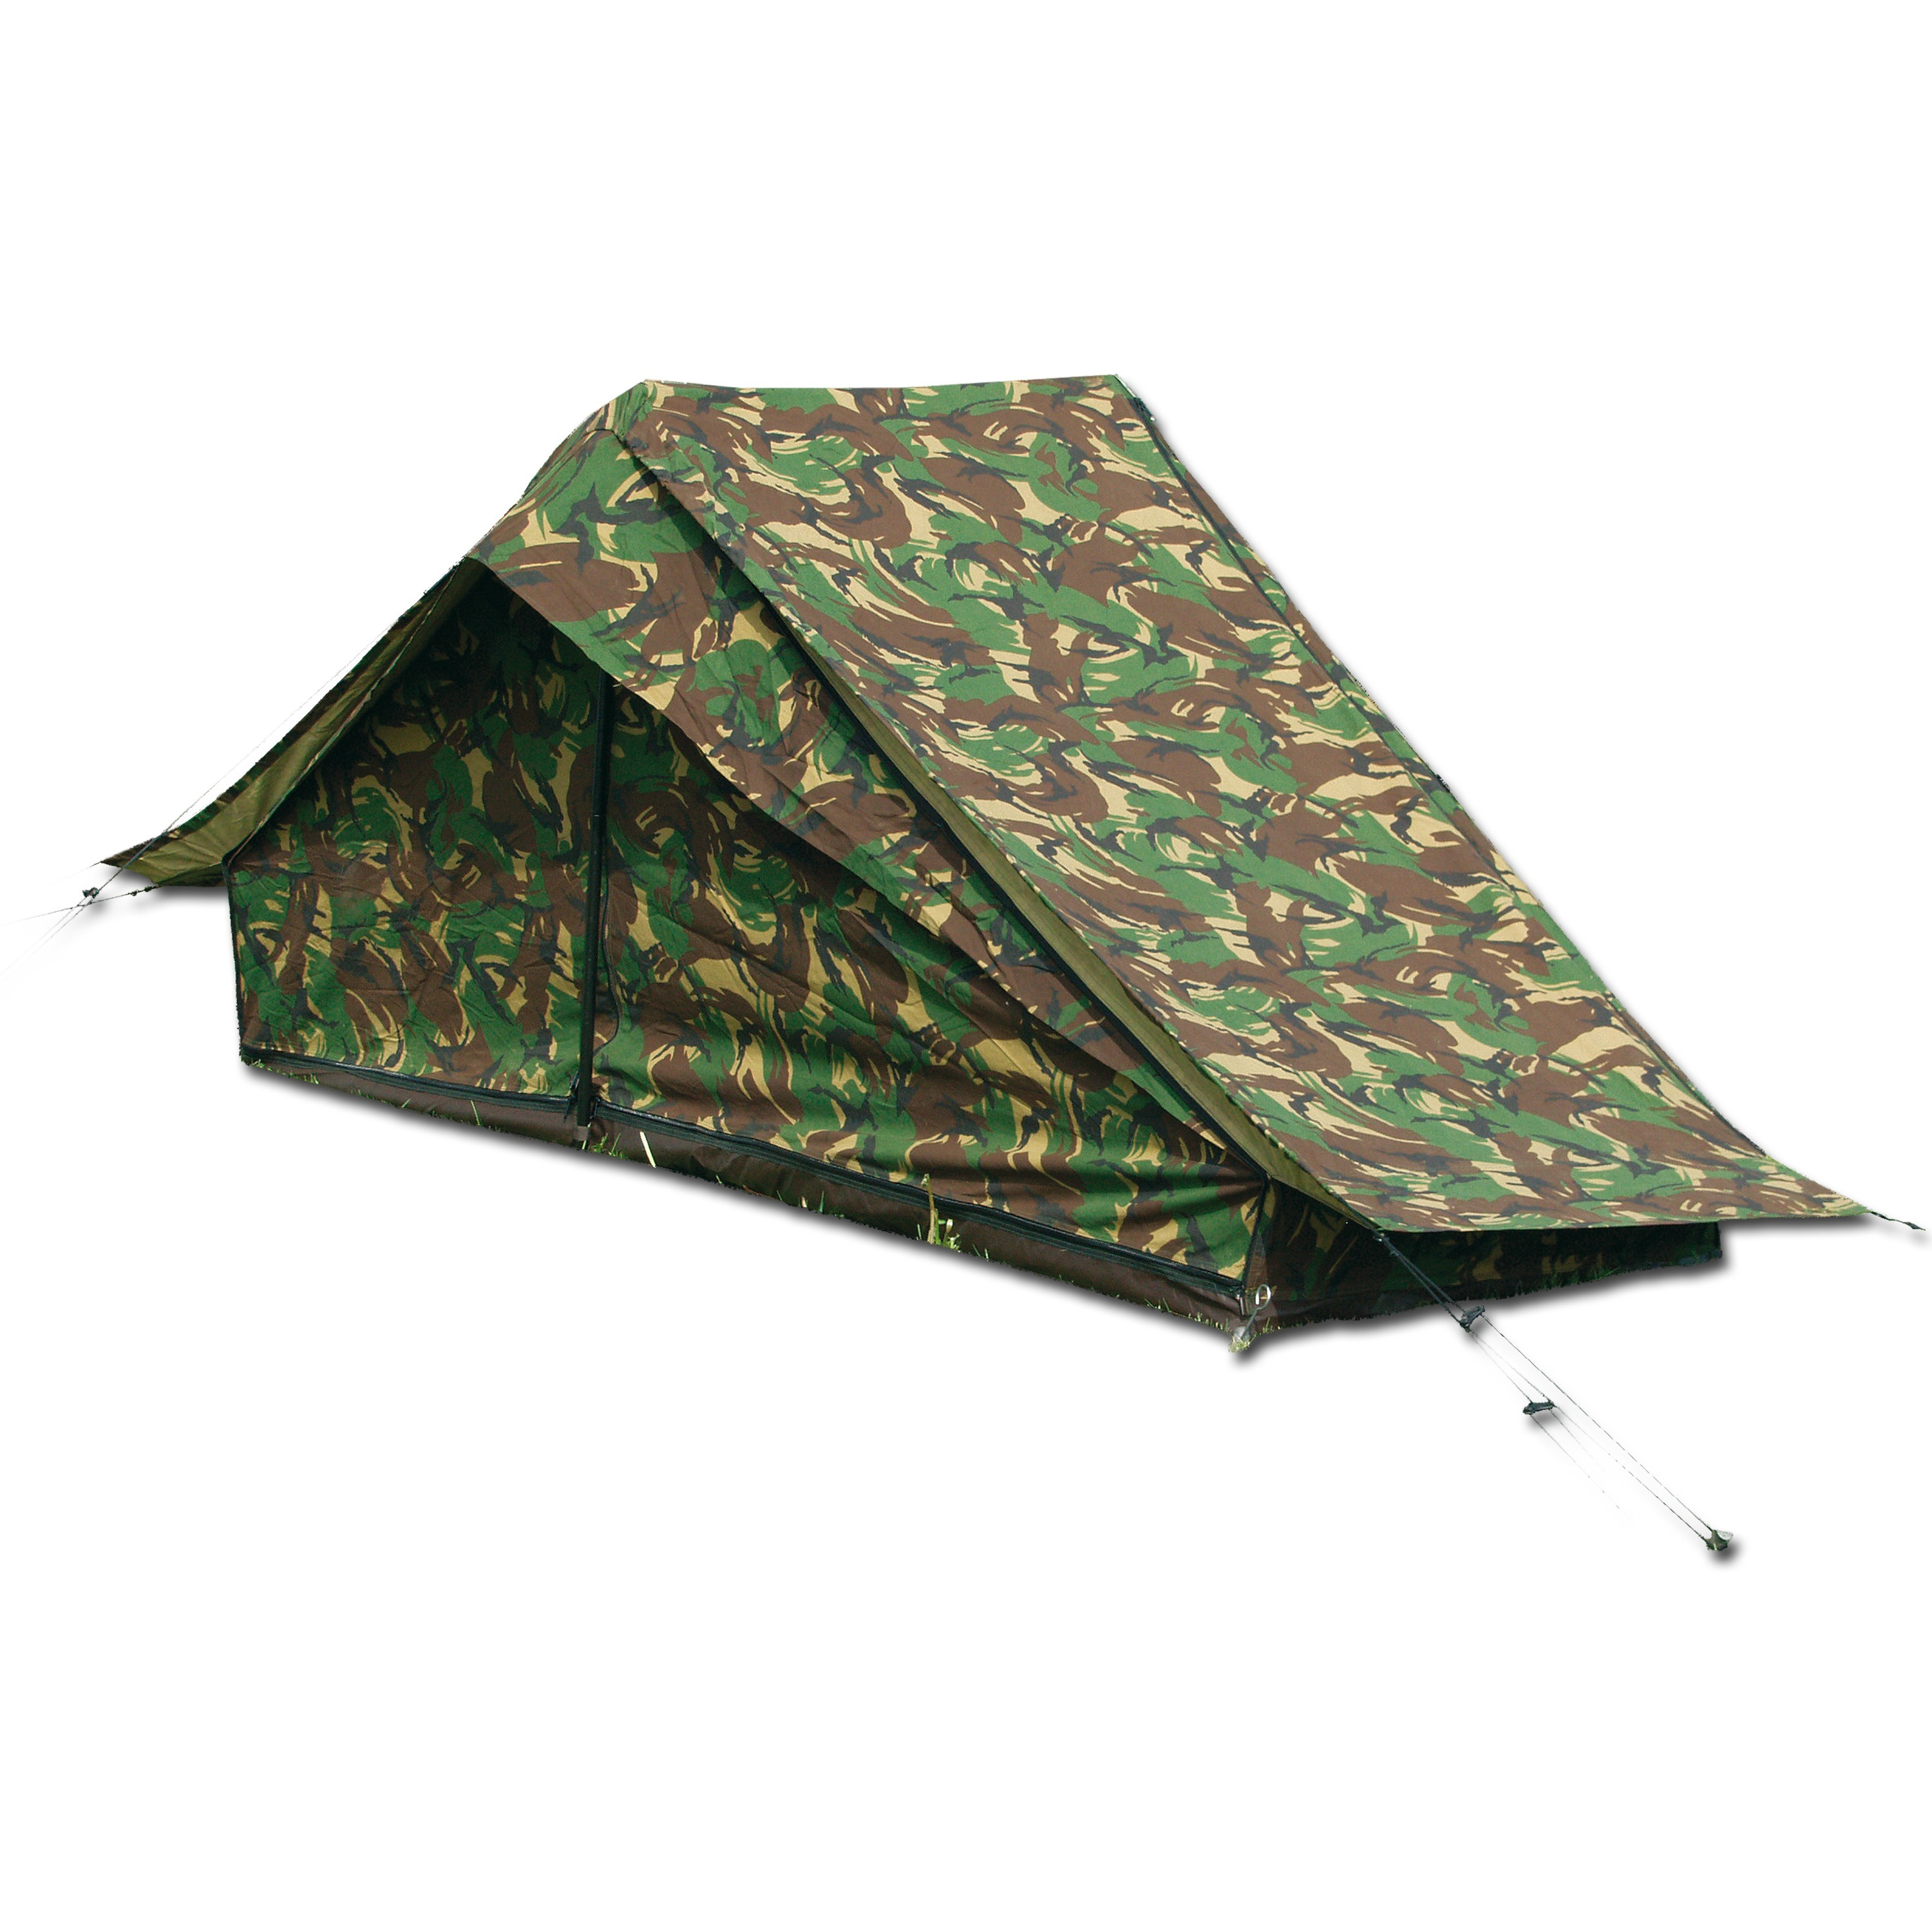 Dutch One-Man Tent Used